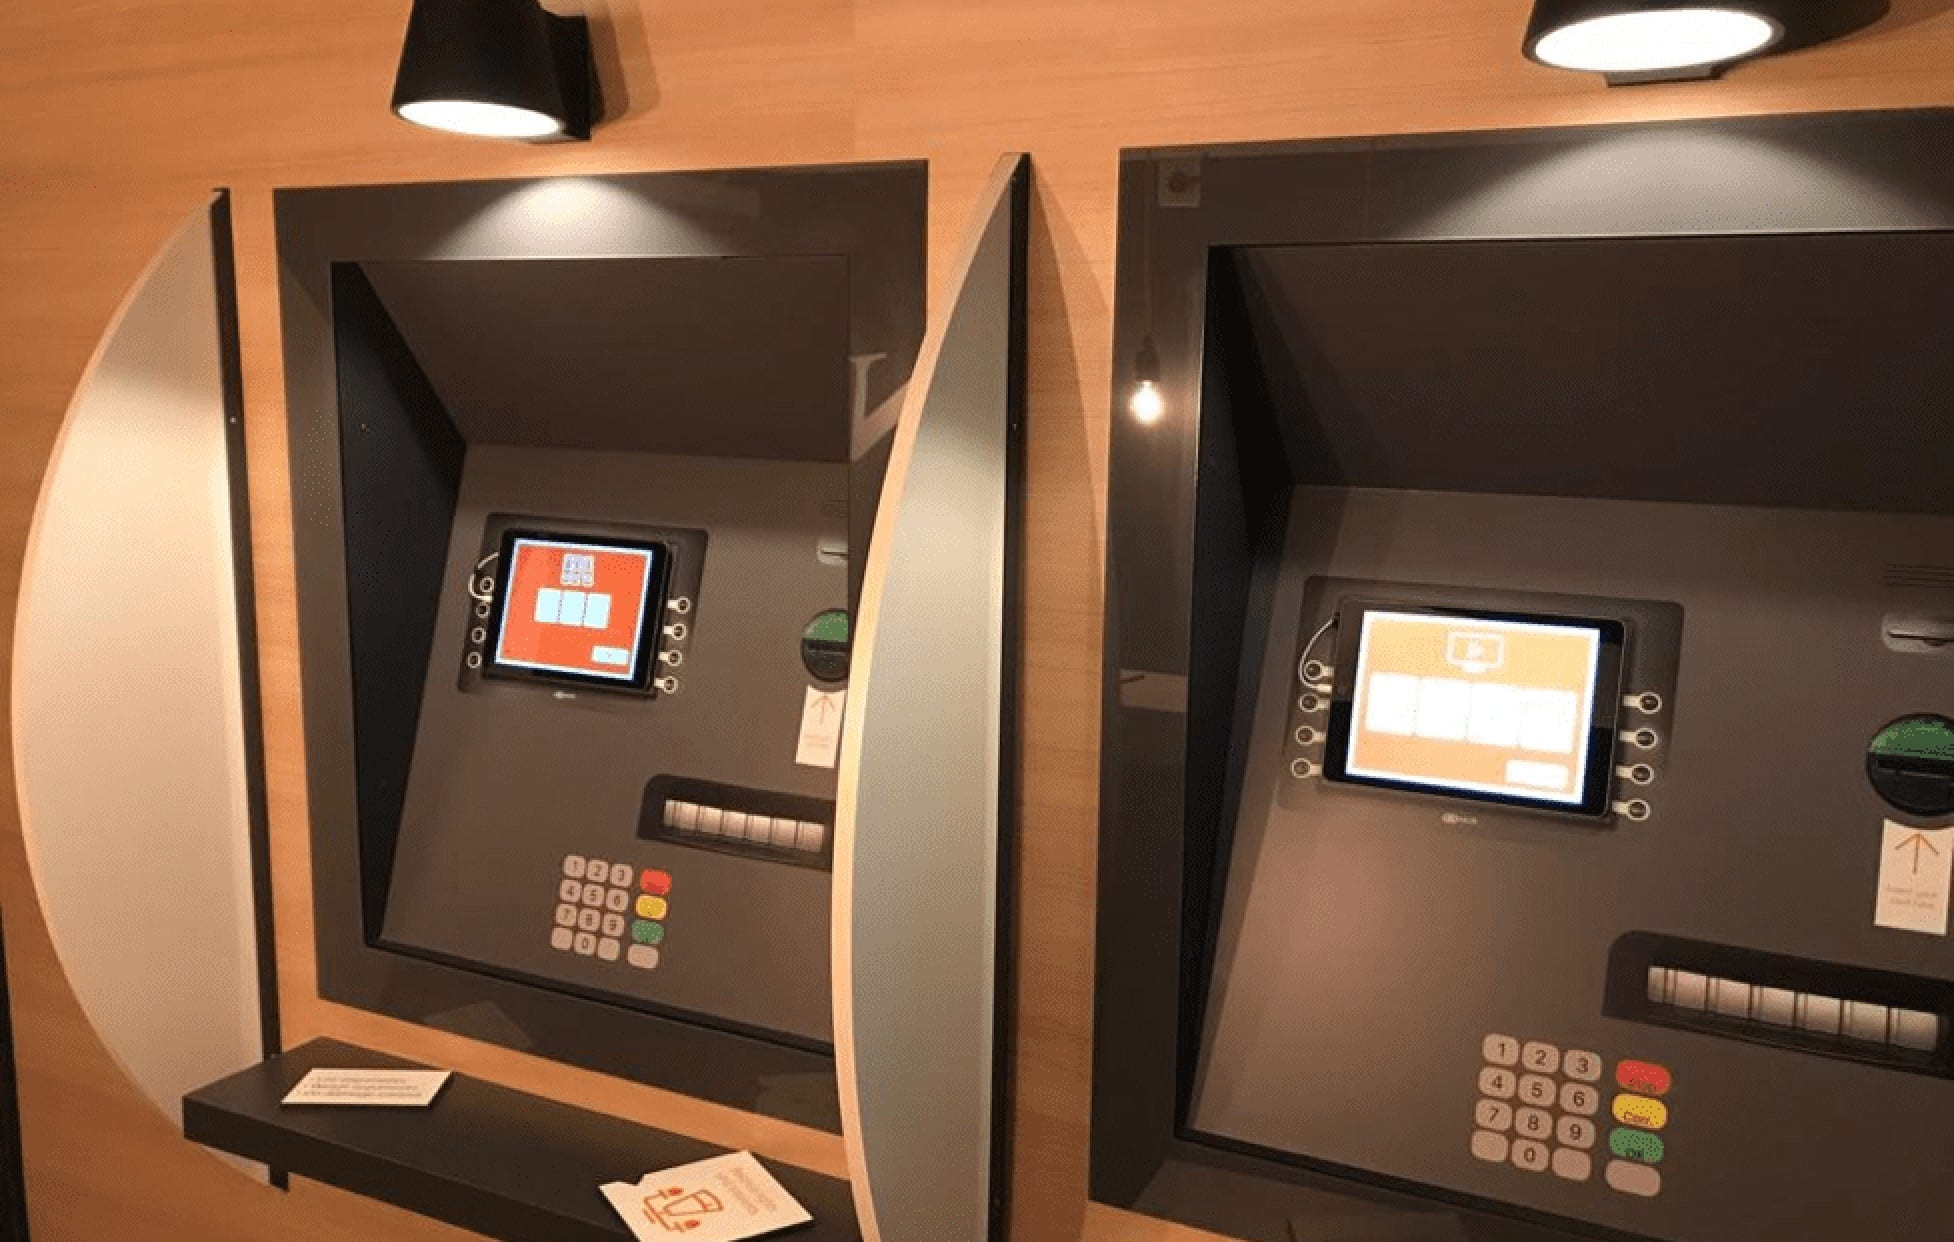 Escape room – two ATMs